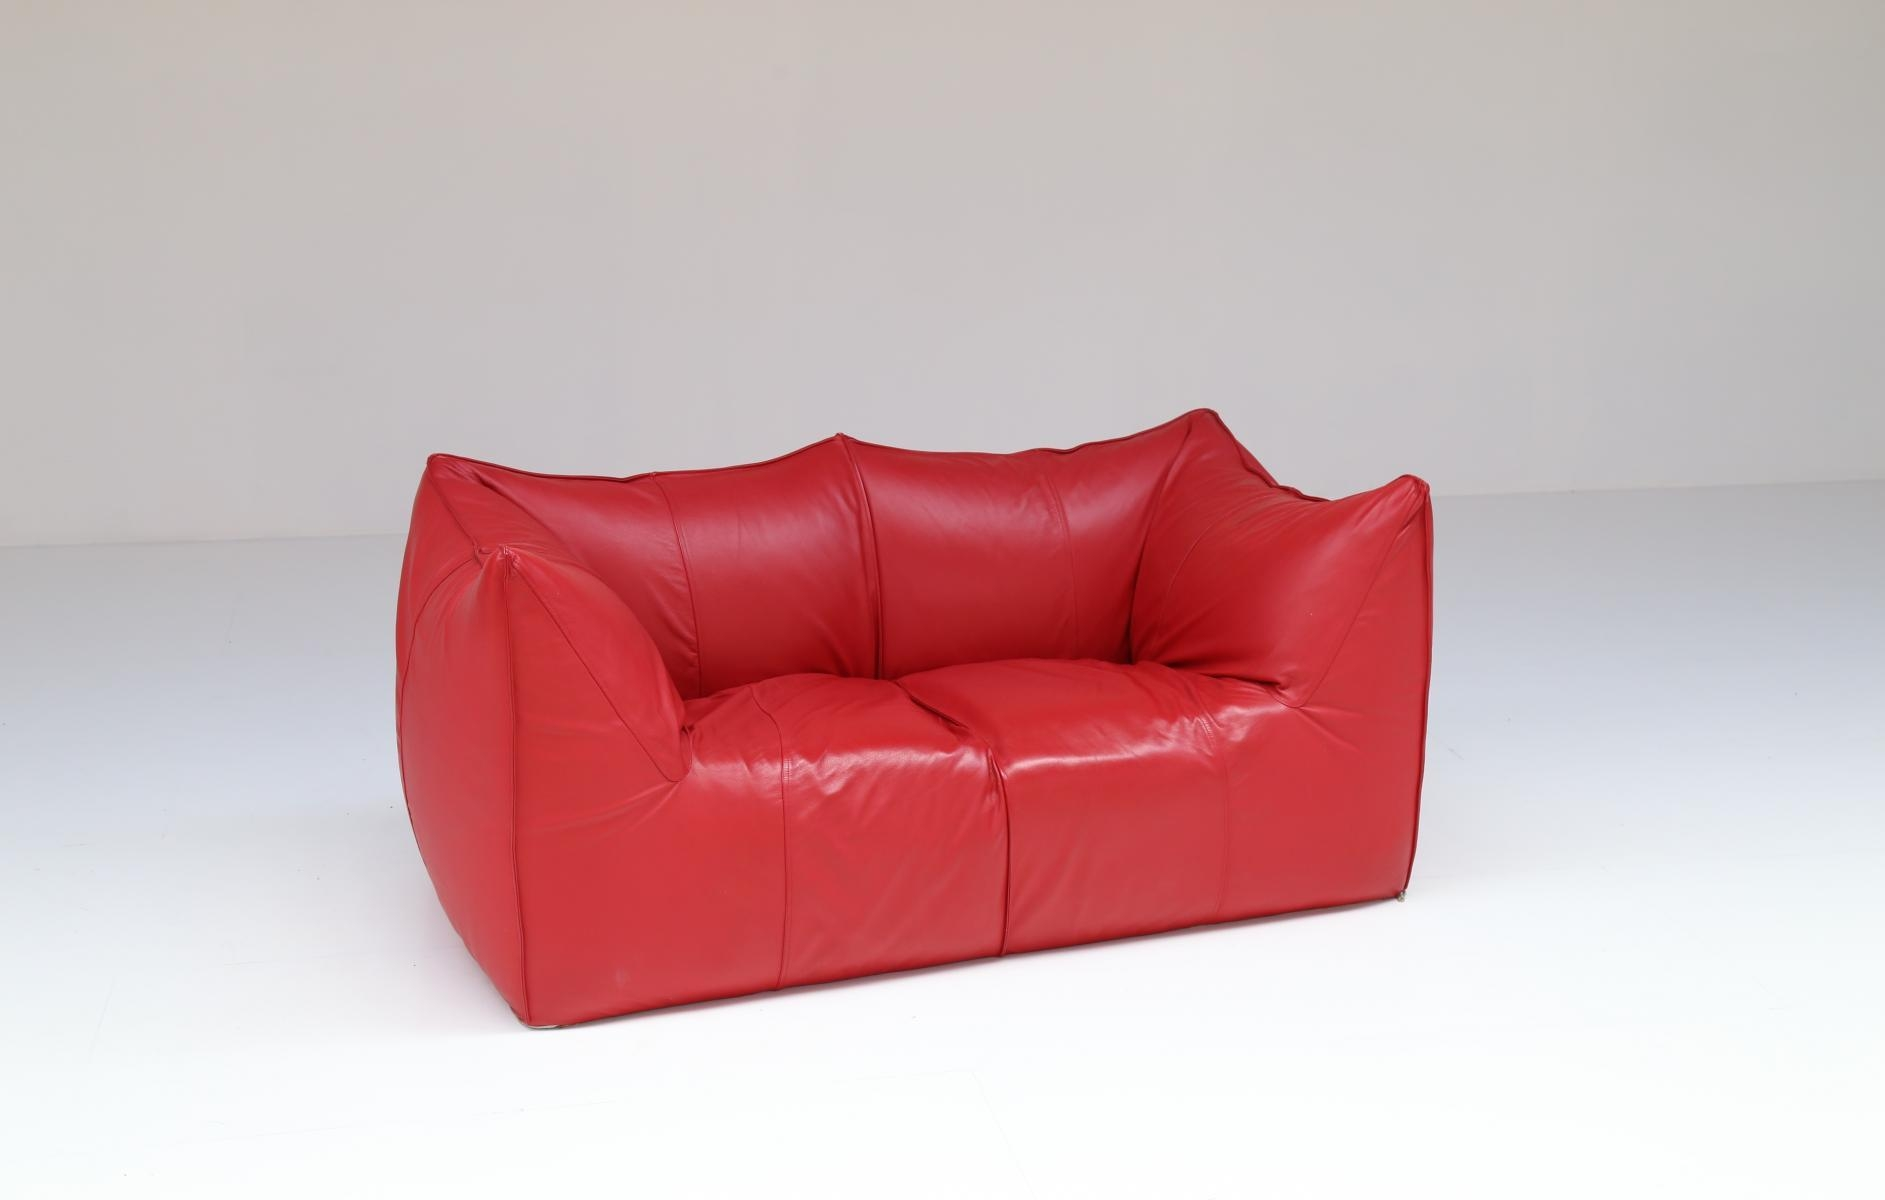 La Bambole Sofamario Bellini For B&b Italia For Sale At Pamono Throughout Bellini Sofas (Image 5 of 20)